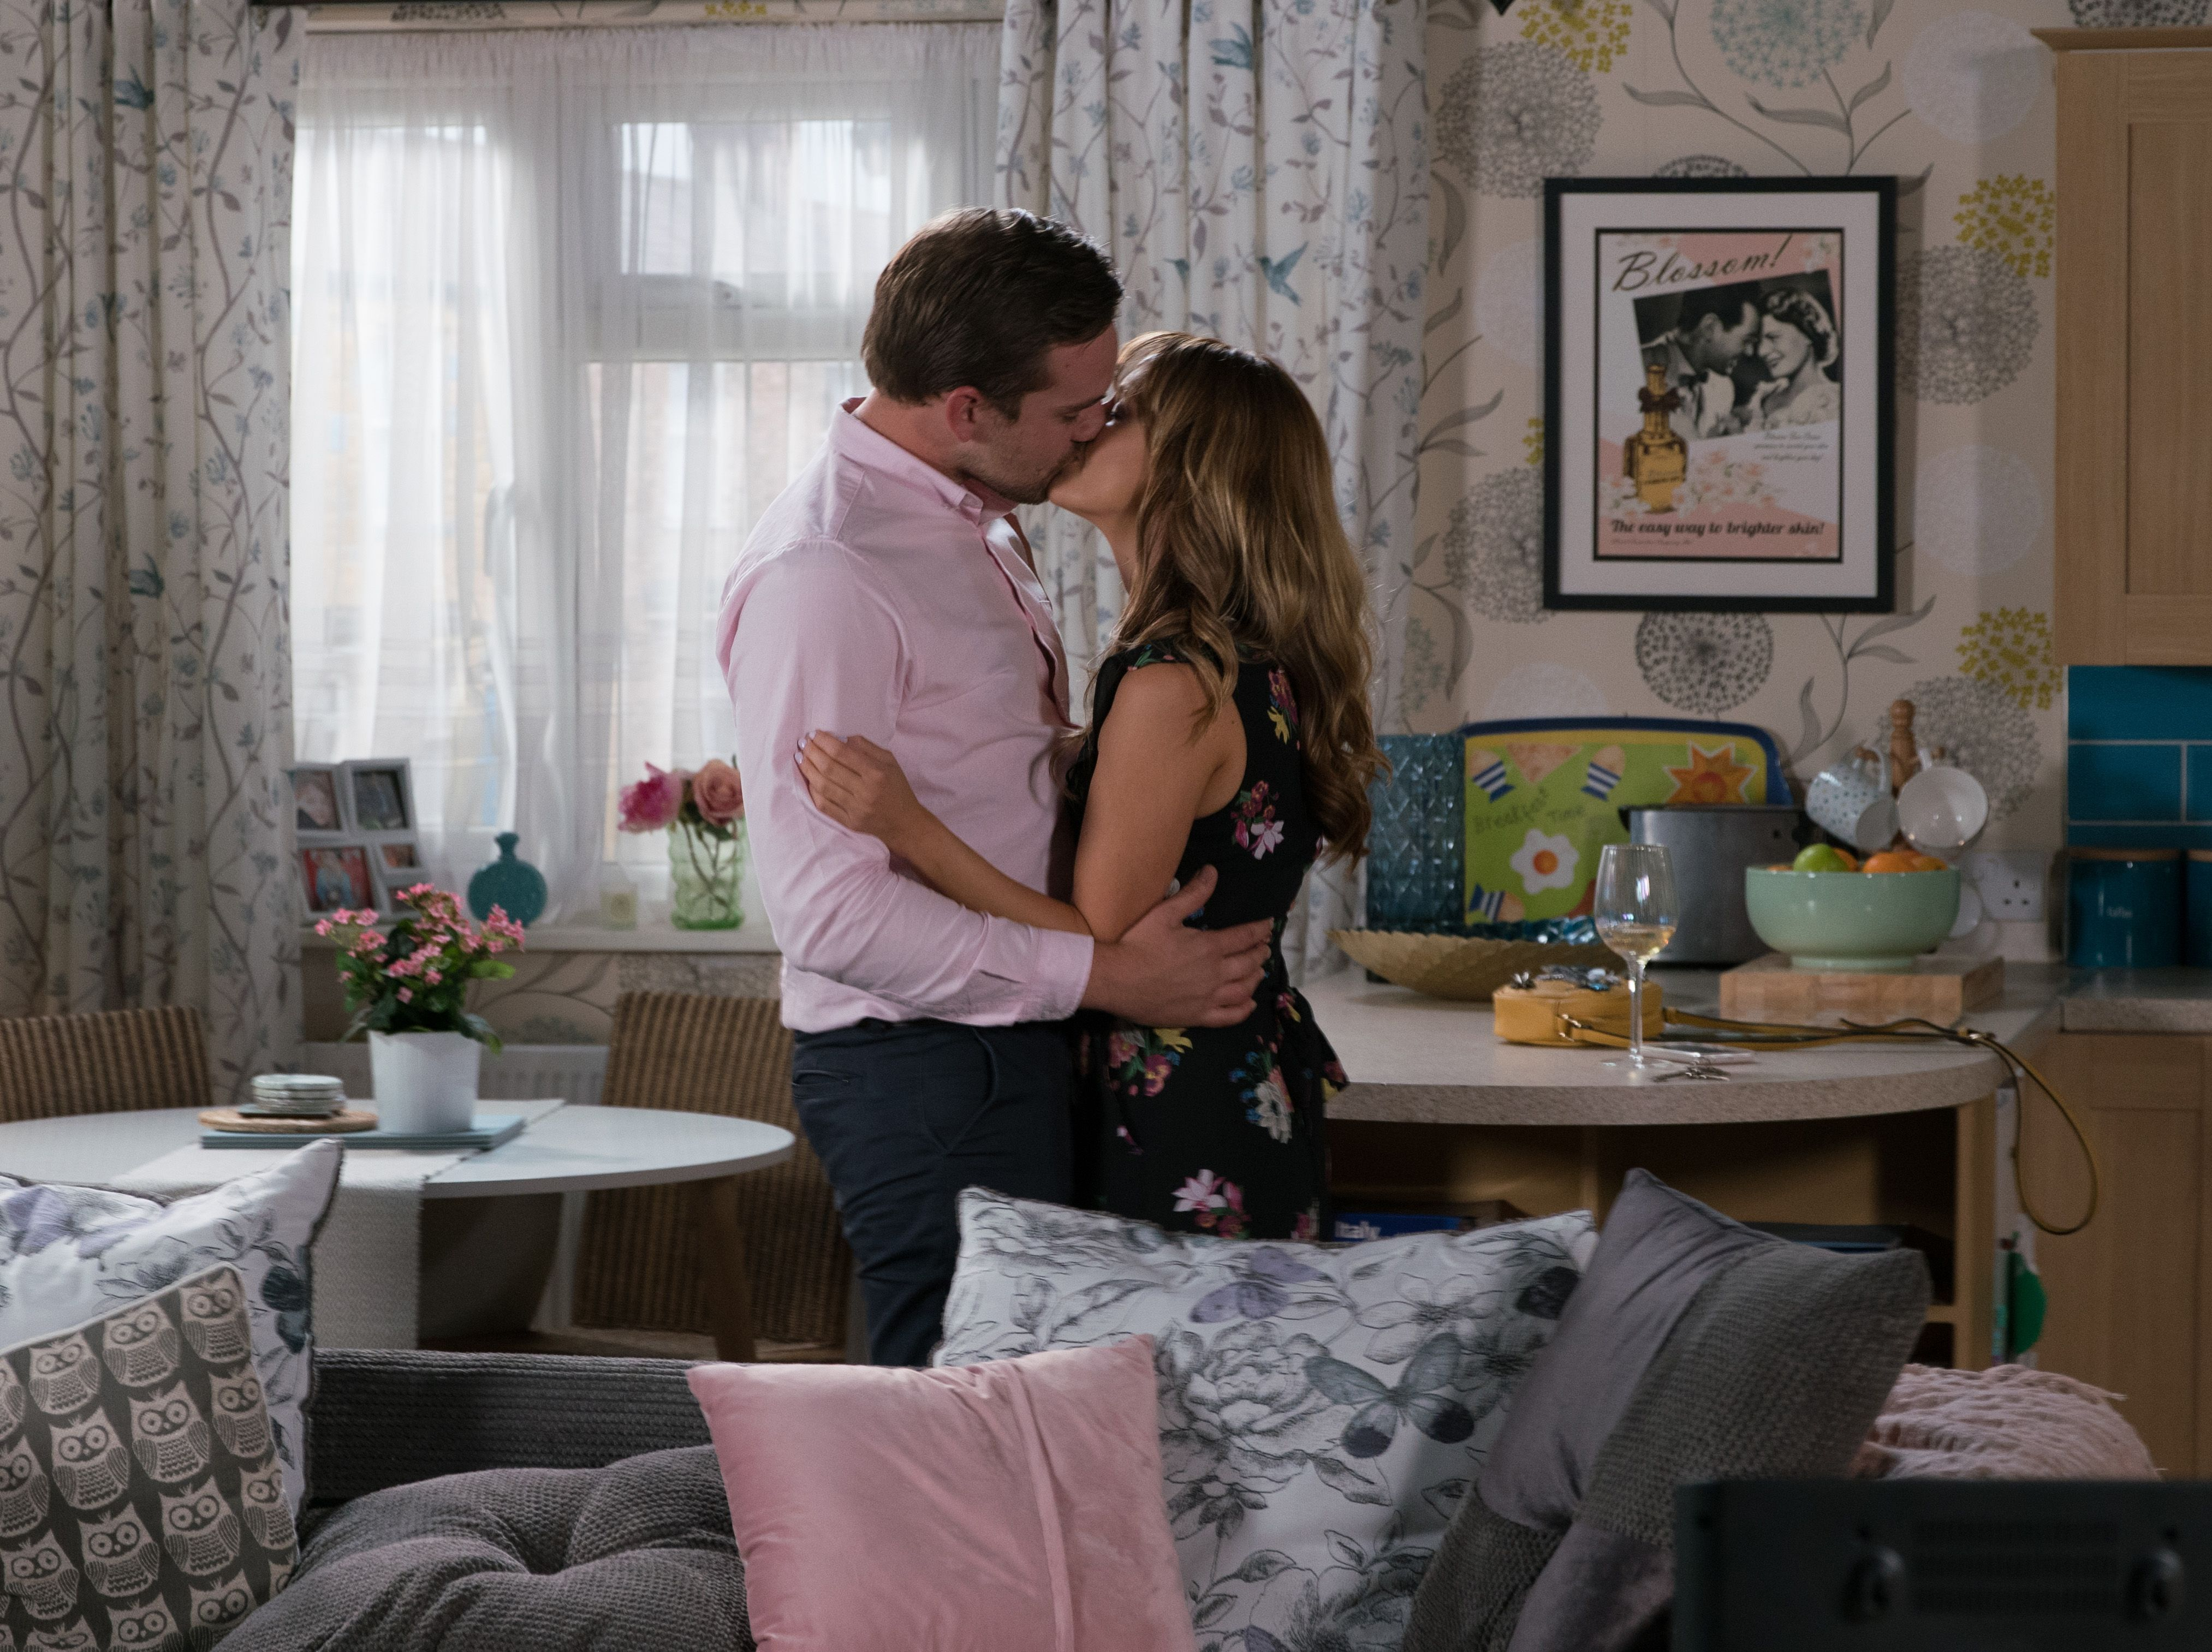 Coronation Street to revisit Maria and Ali's relationship in 2020